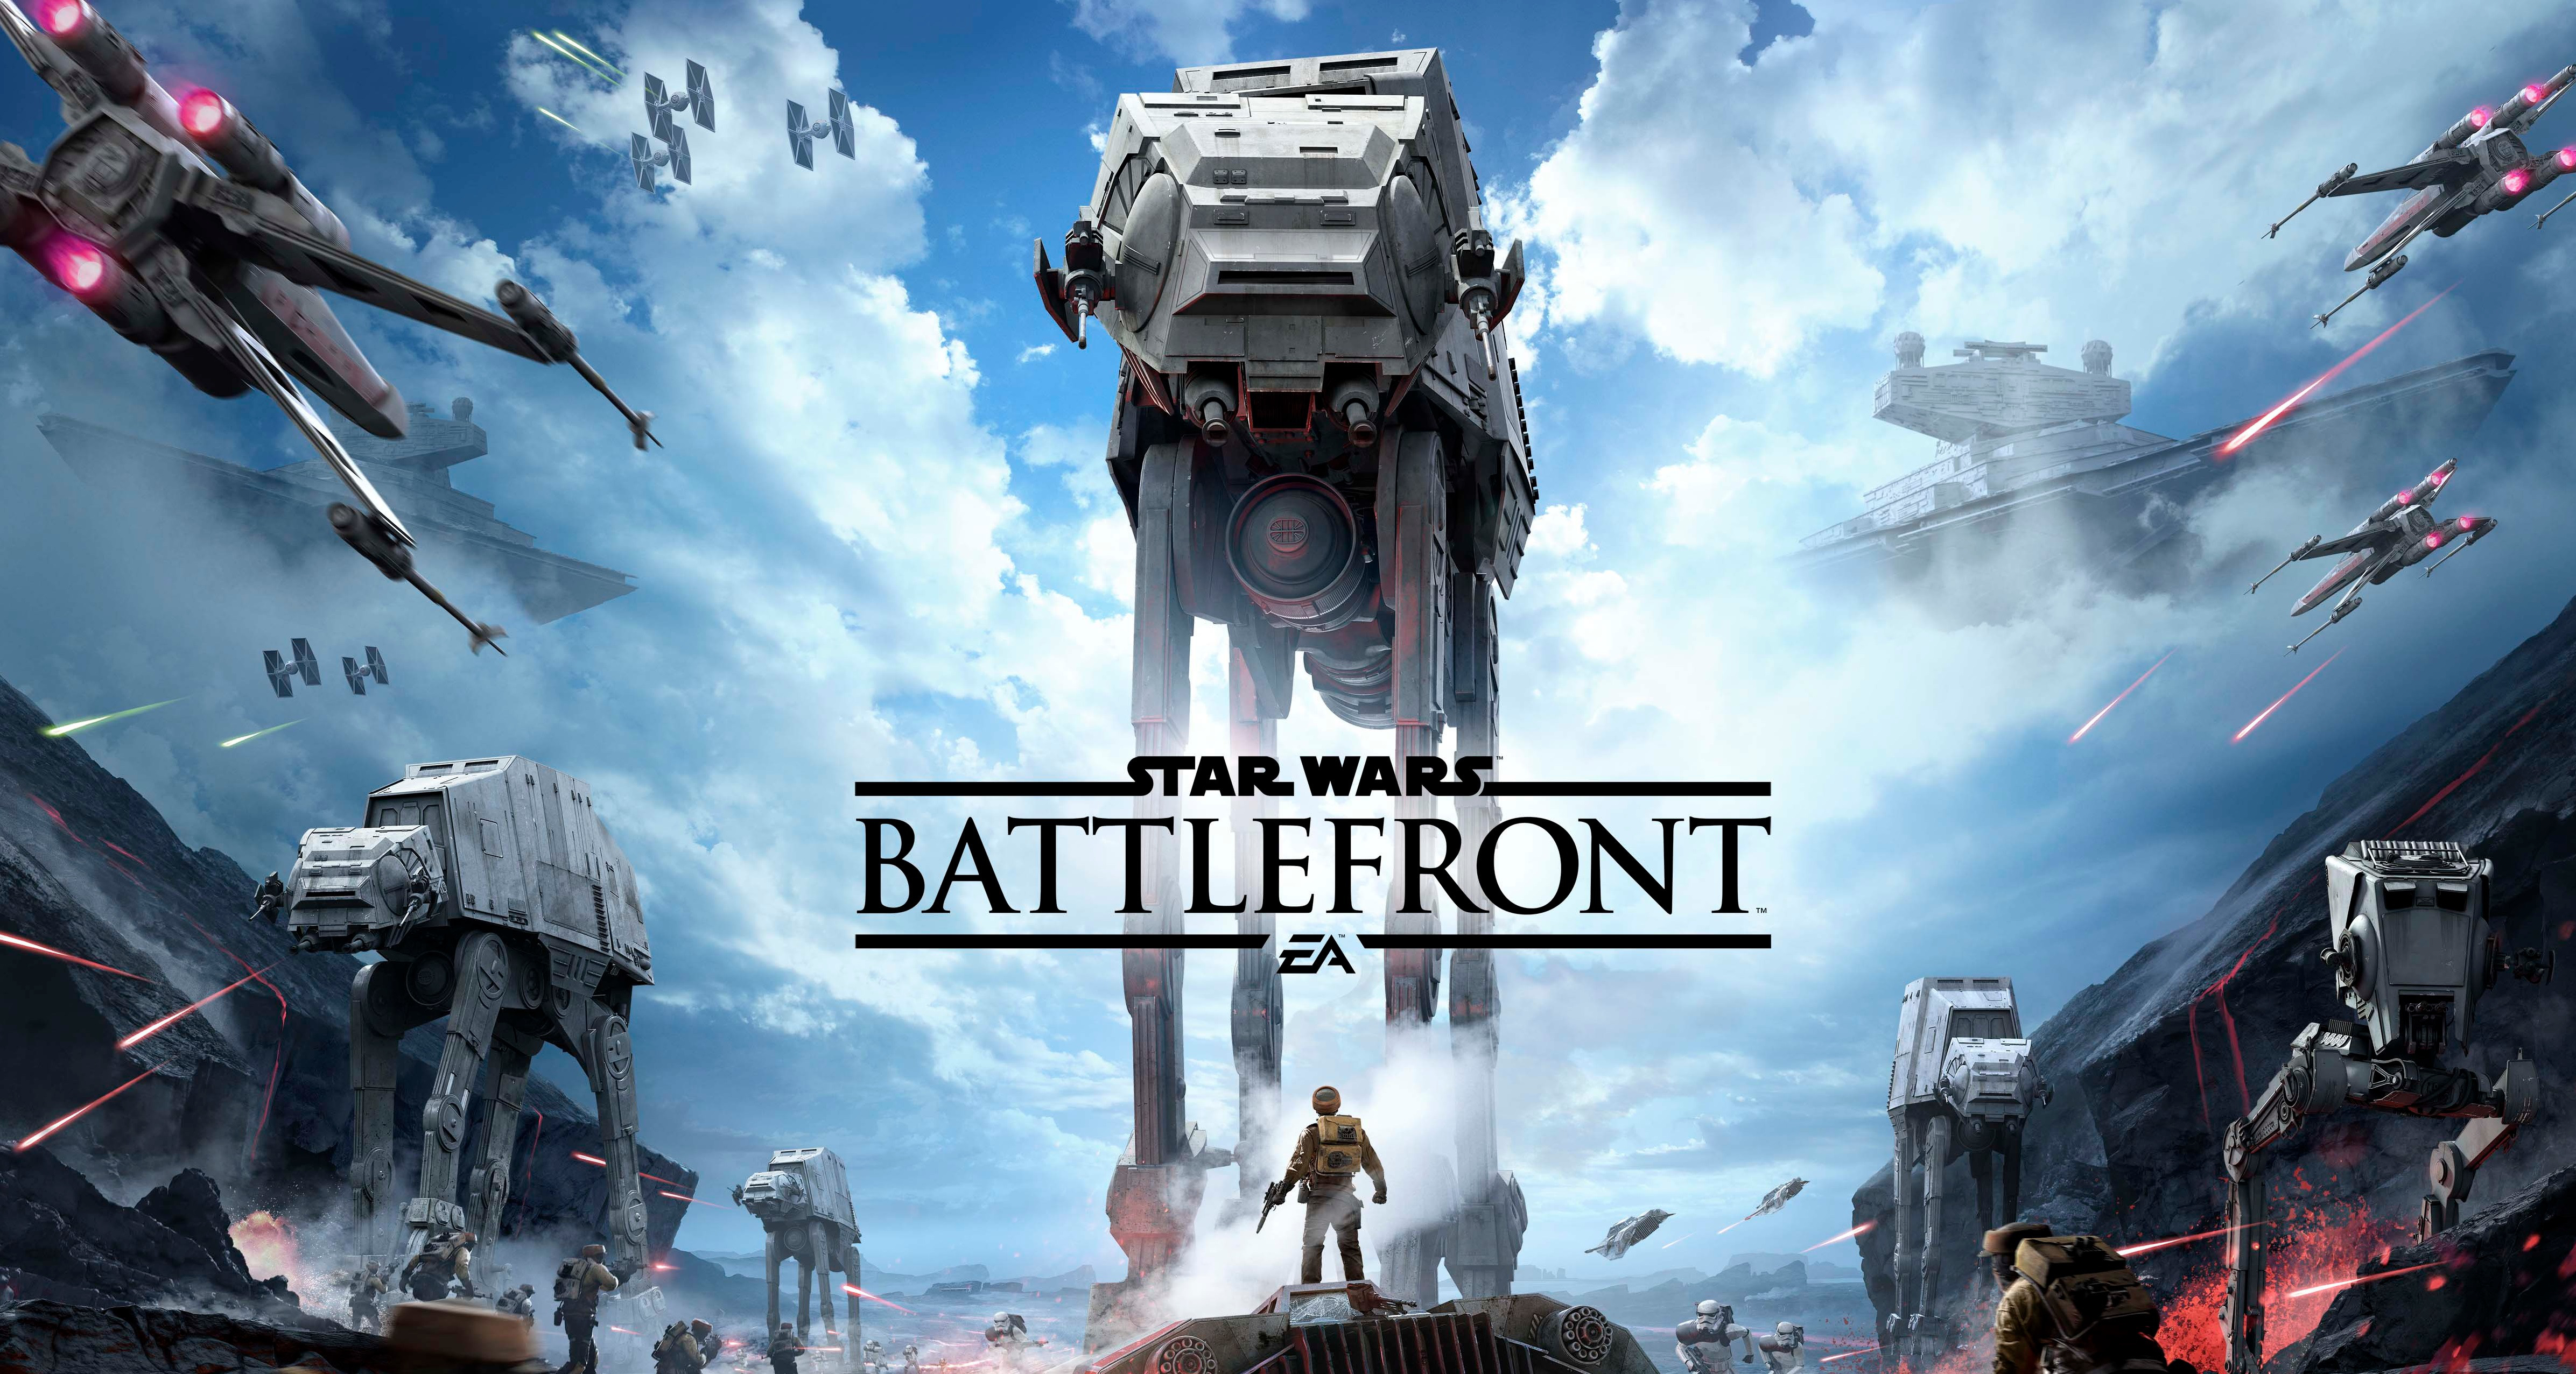 Star Wars Battlefront: Yay or Nay?